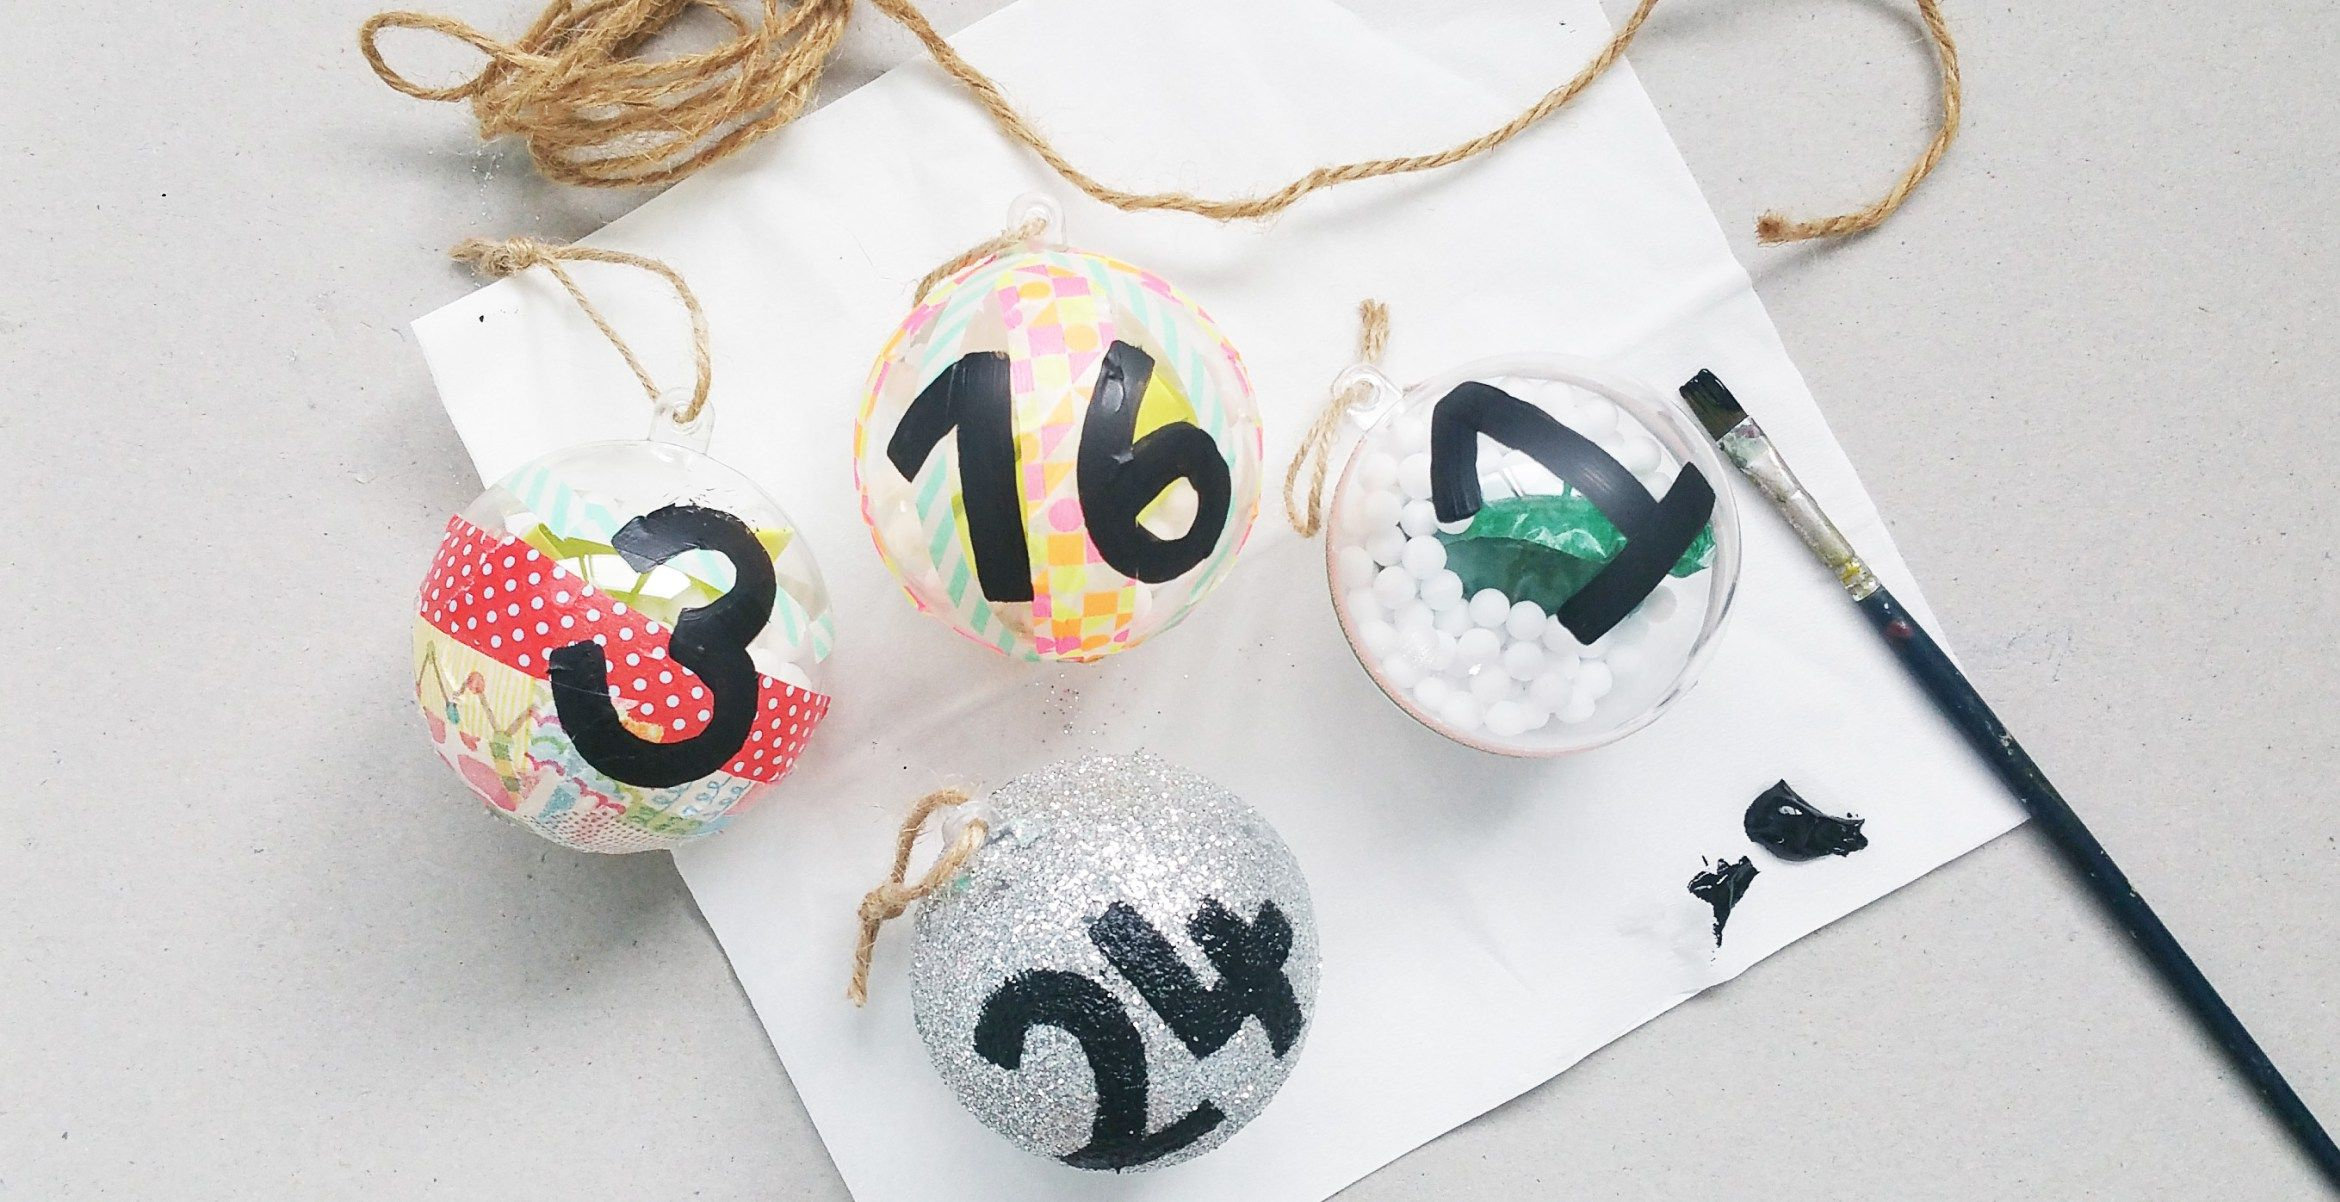 20151205_151723 Christmas ornaments, Holiday decor, Crafts